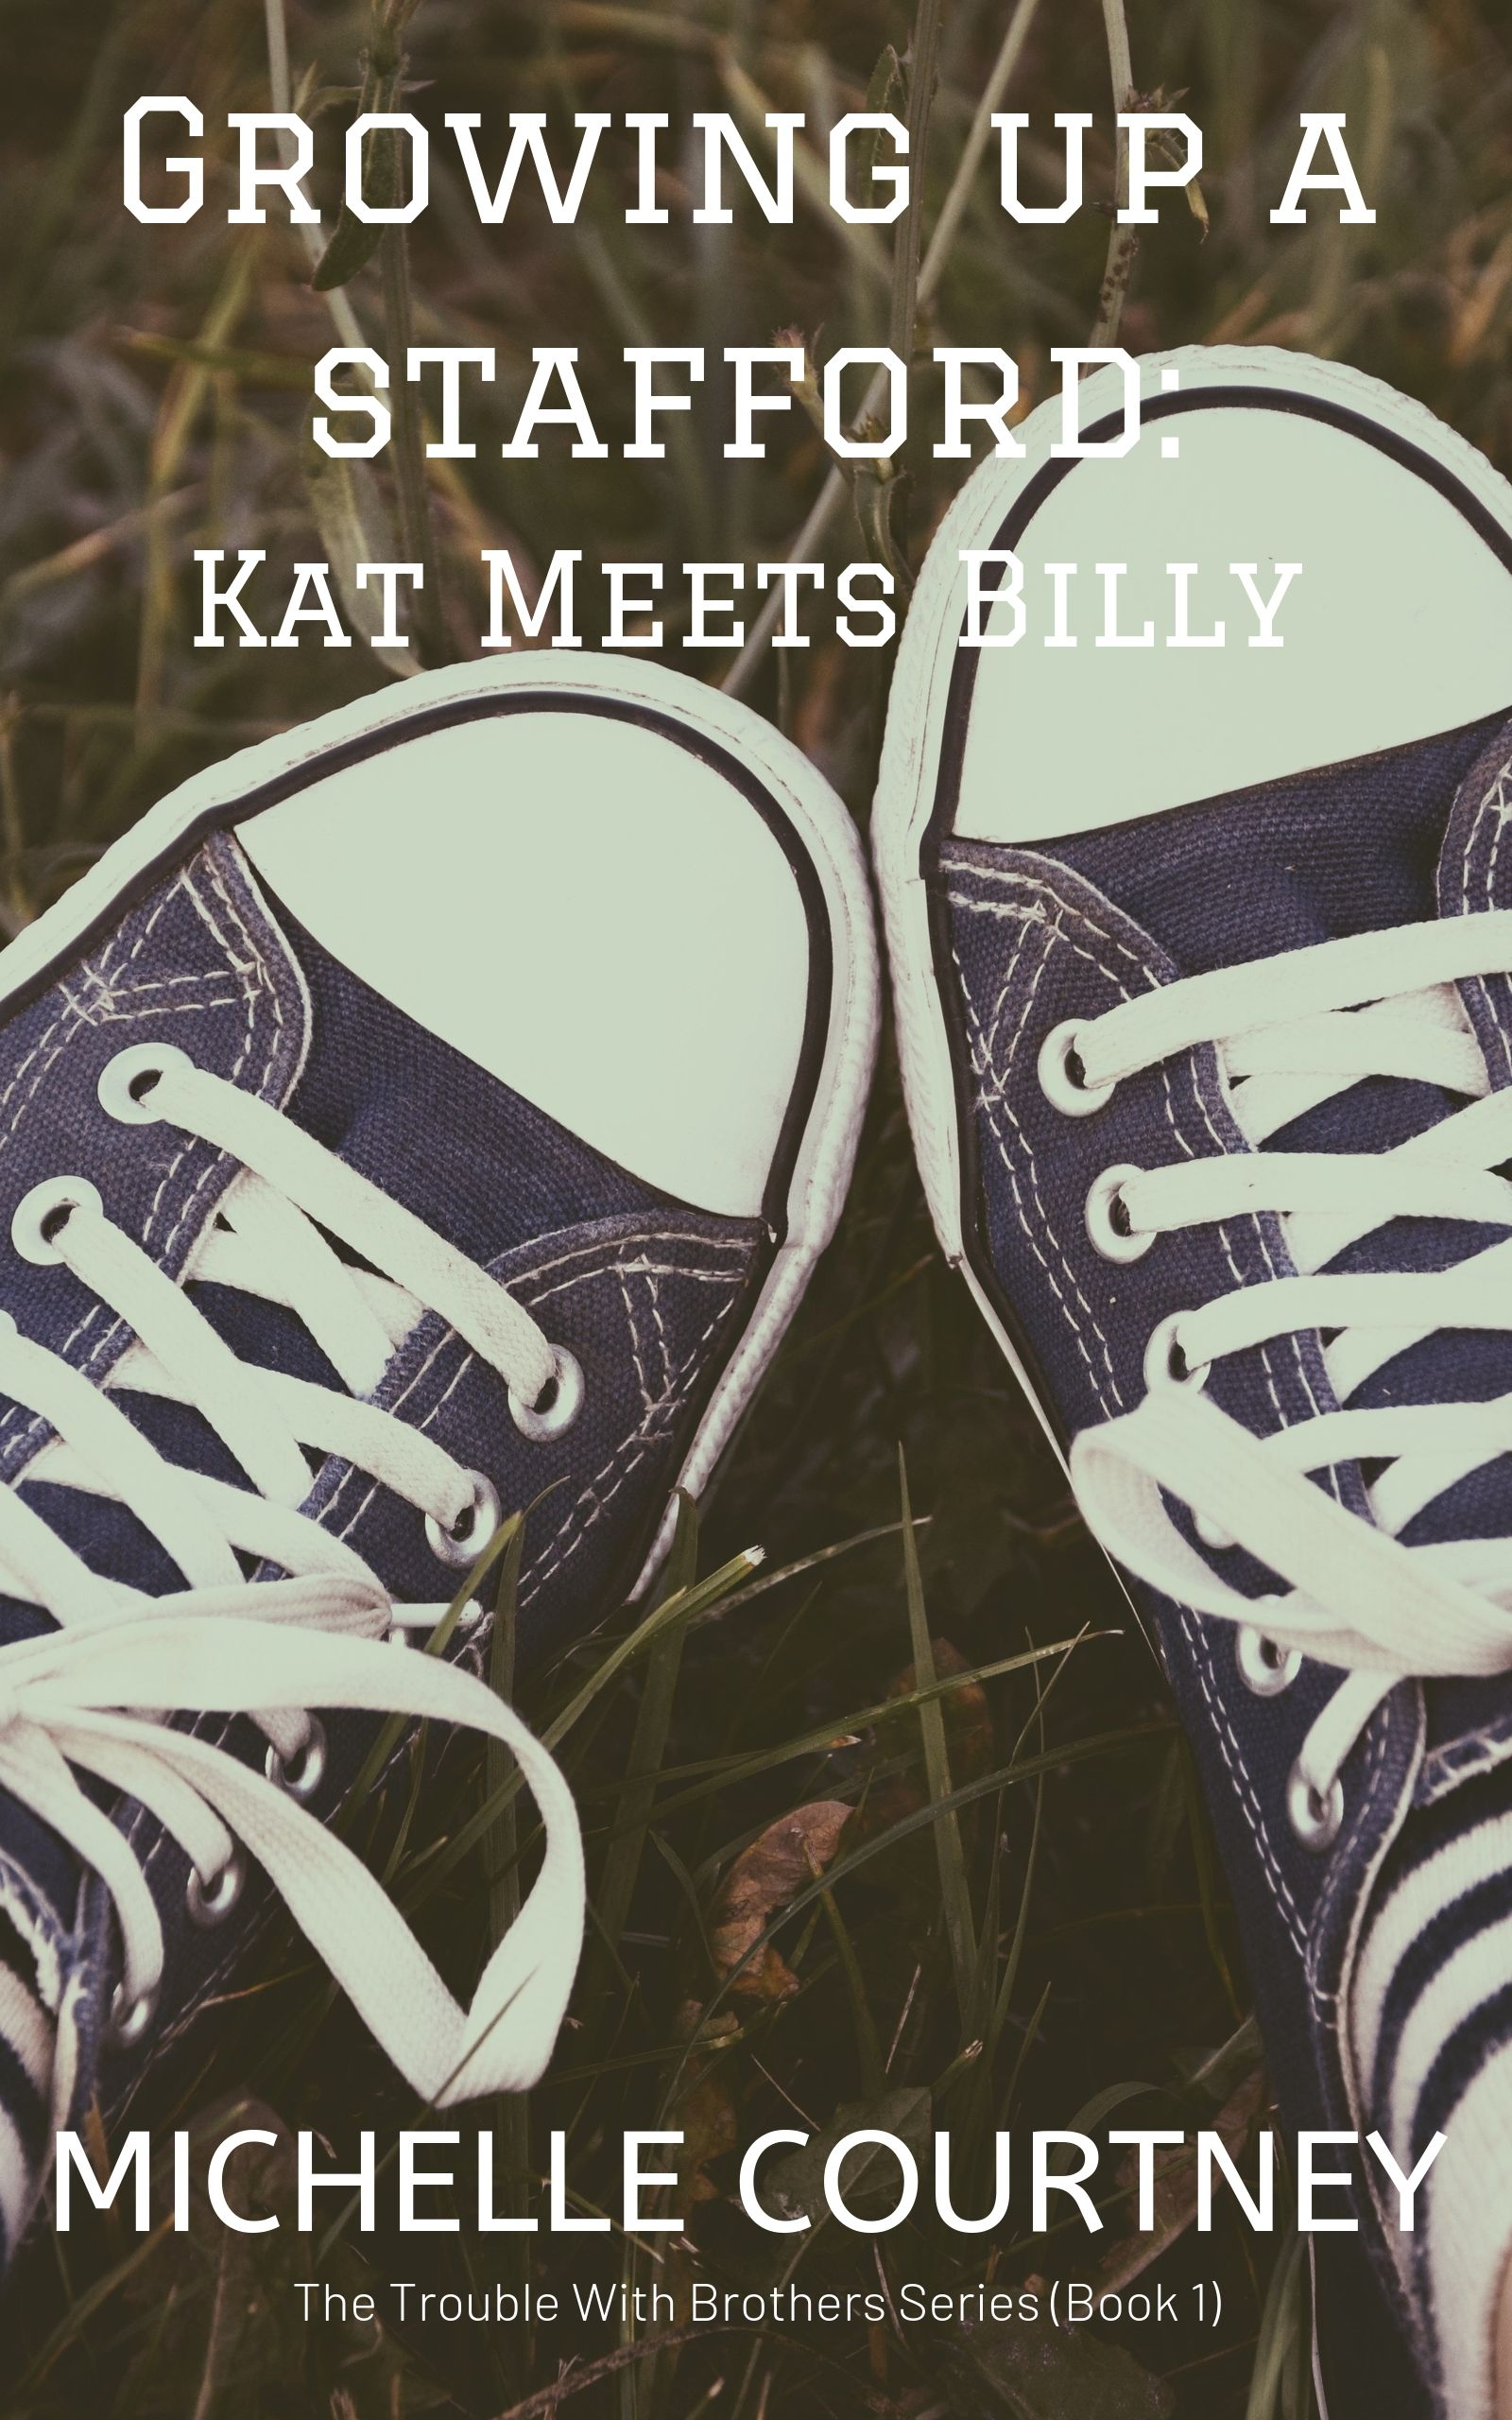 Growing Up A Stafford Book1 Kat Meets Billy